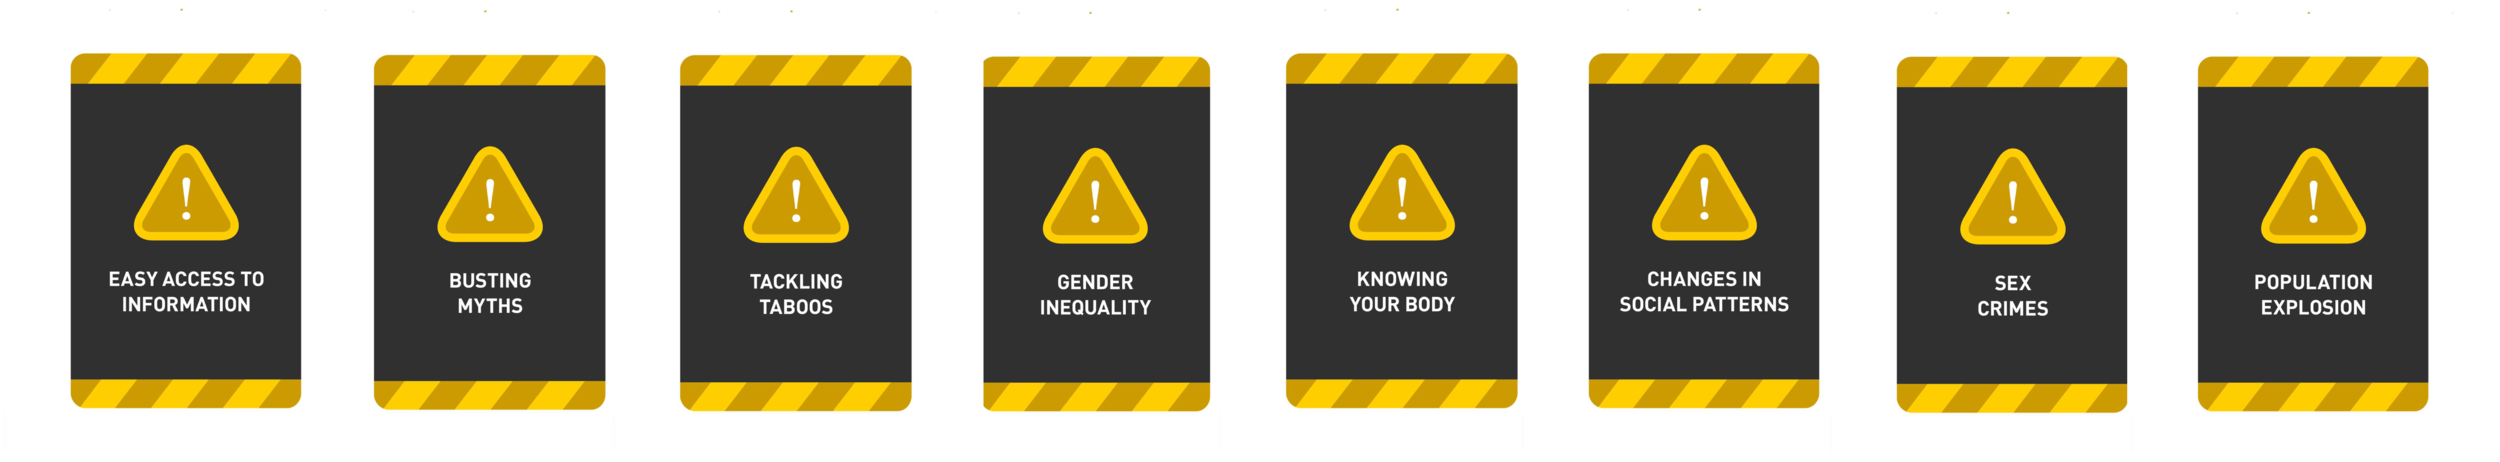 These trigger cards contain the reasons why sex education is important and needed in society. They were used as triggers to prompt discussion amongst the team.